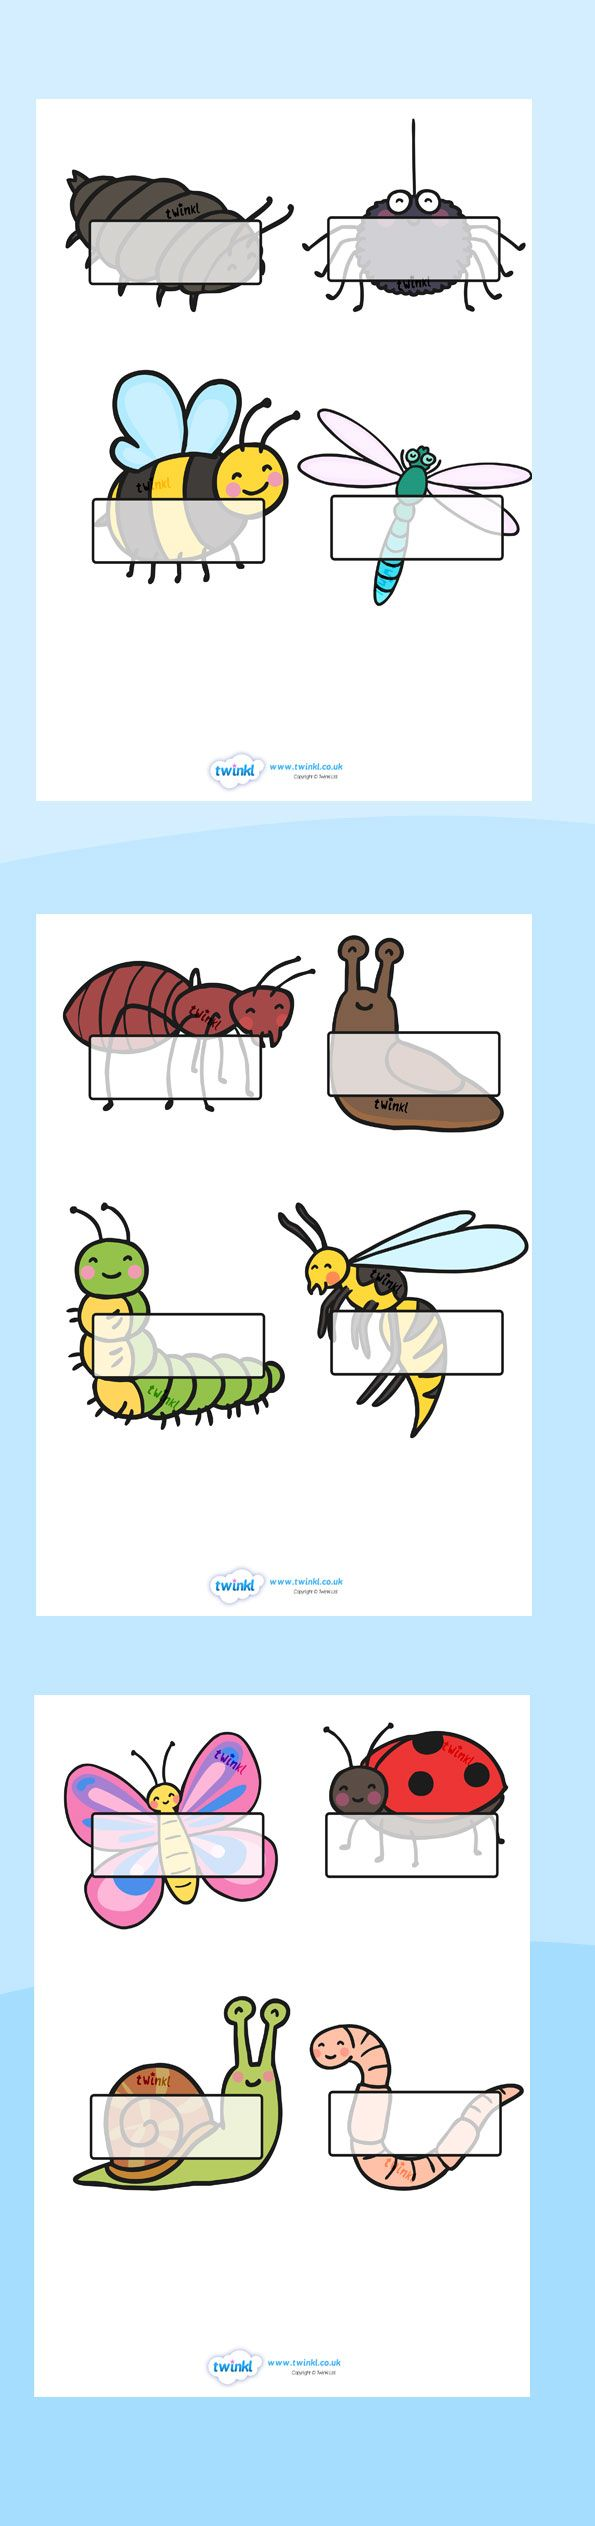 Twinkl Resources >> Editable Self Registration- Minibeasts >> Printable resources for Primary, EYFS, KS1 and SEN.  Thousands of classroom displays and teaching aids! Self Registration, Minibeasts, Topics, Labels, Editable